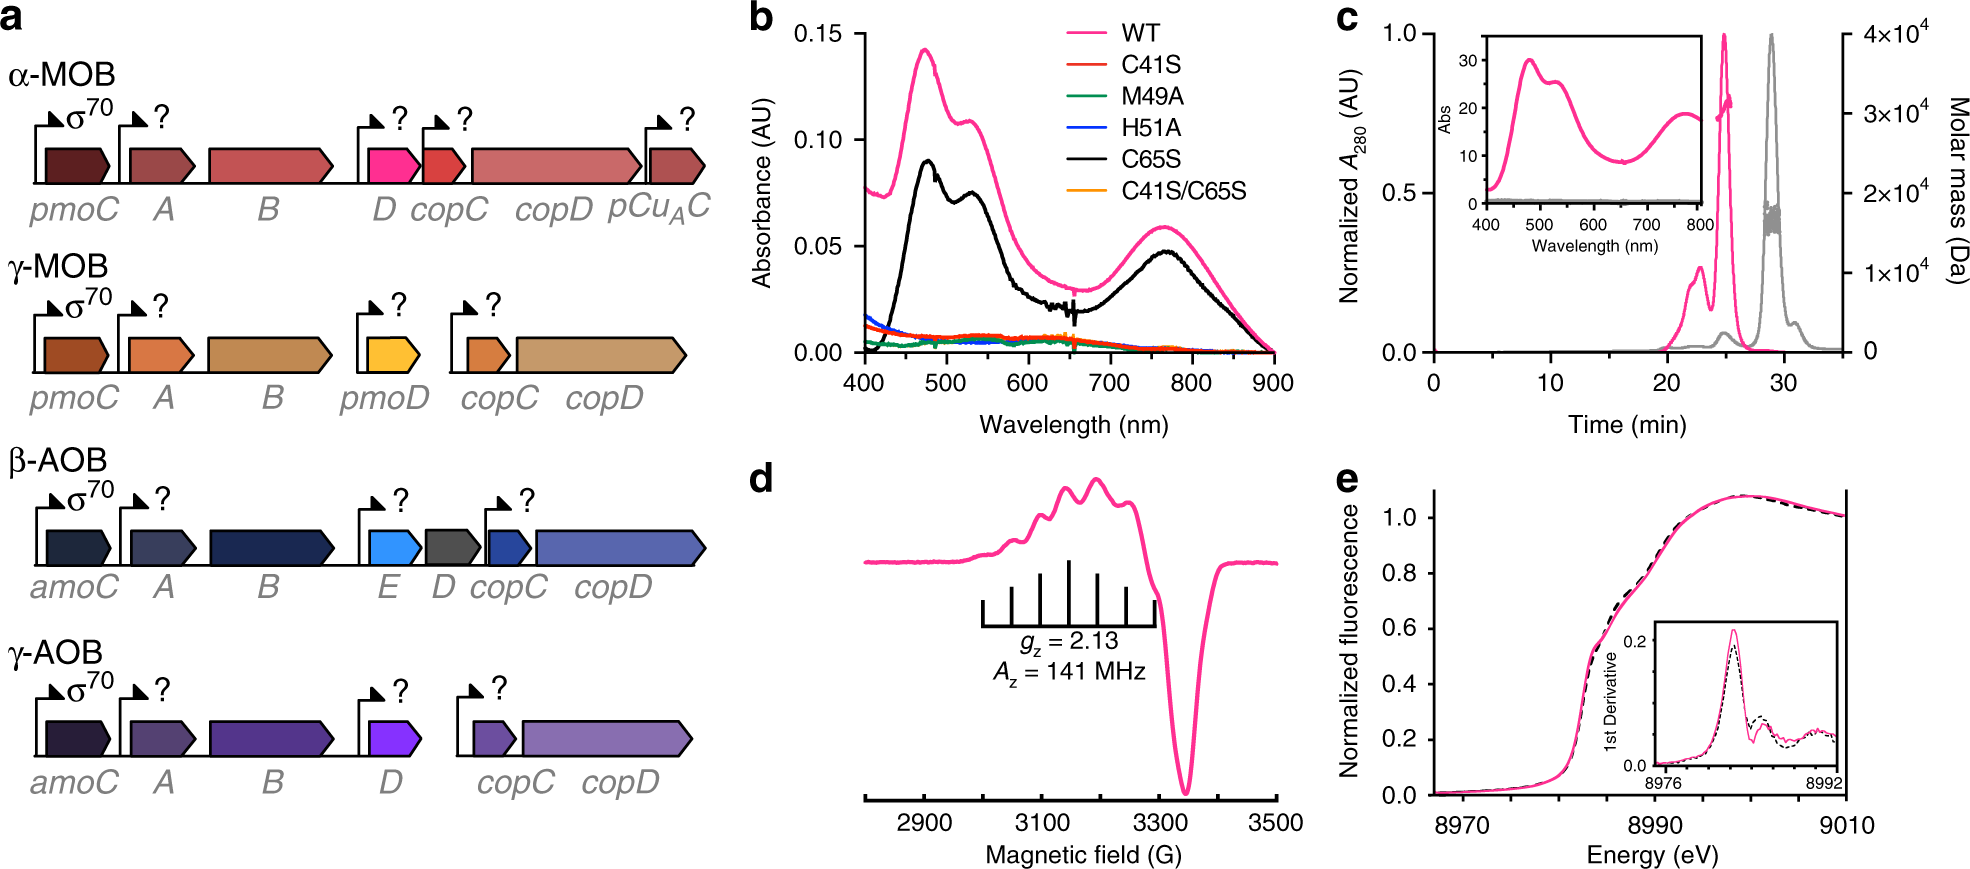 Characterization of a long overlooked copper protein from